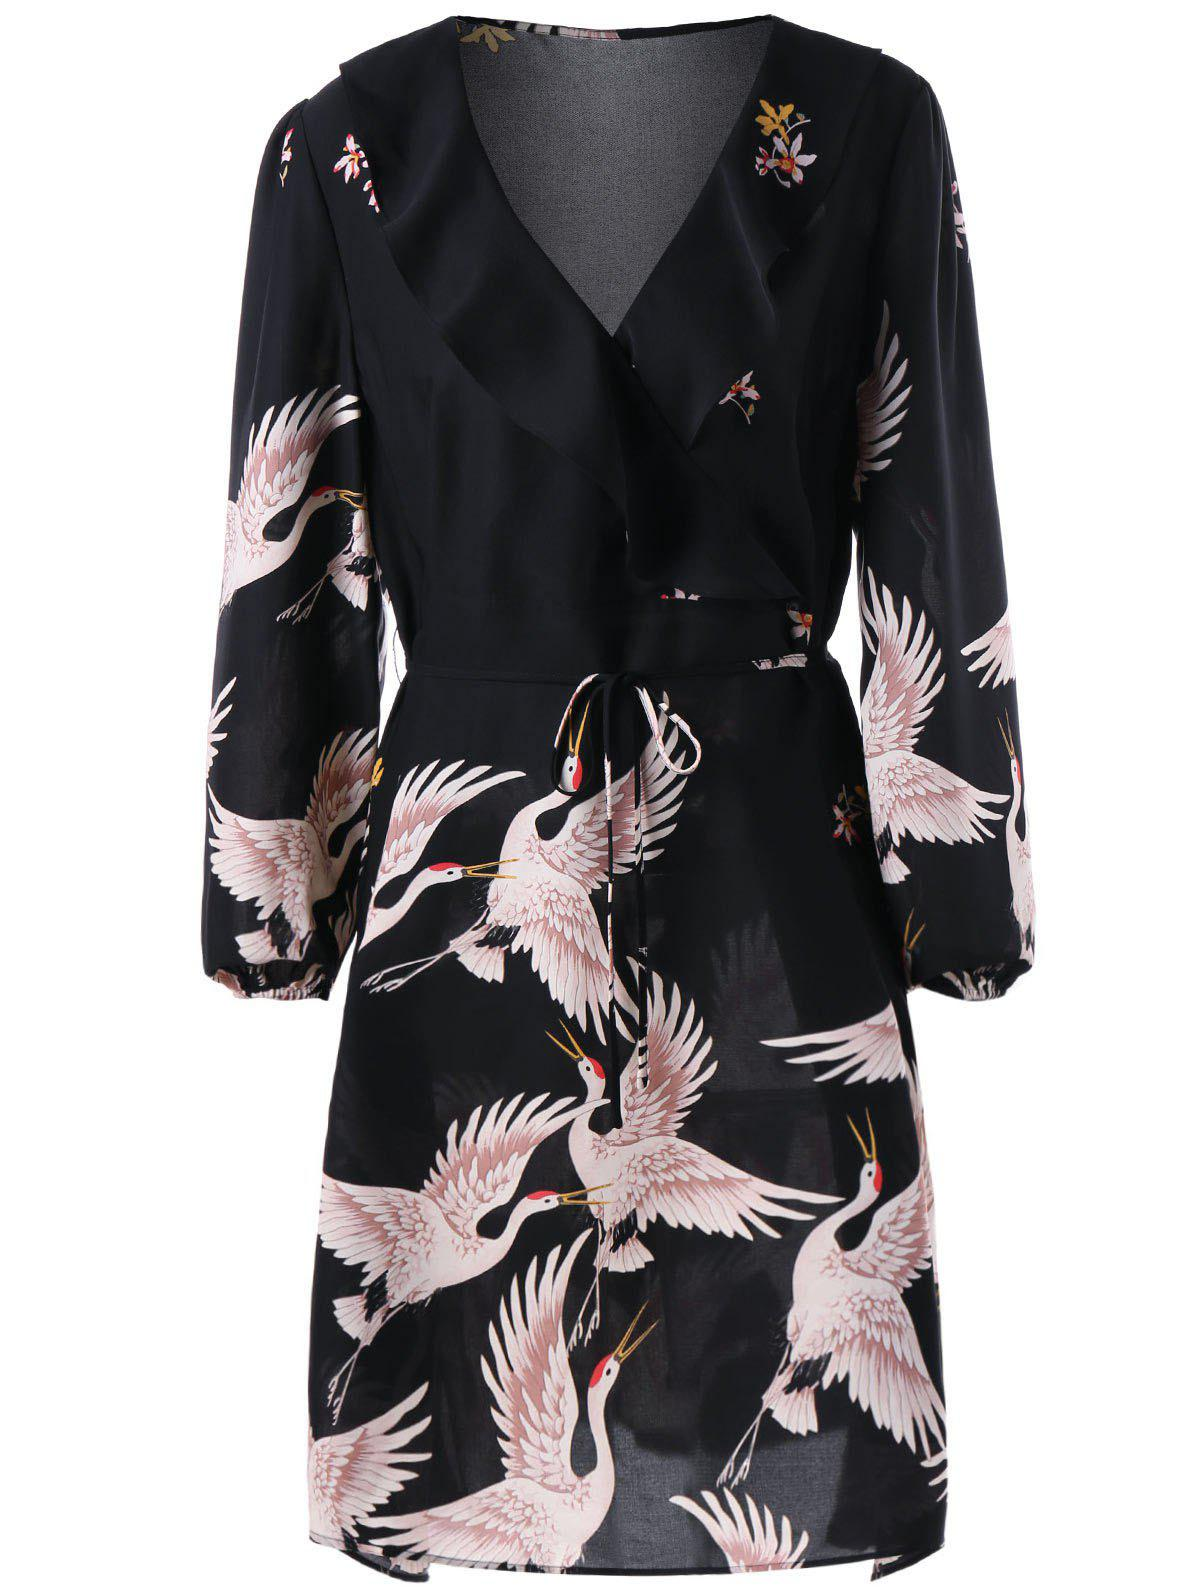 Plus Size Gruidae Print Flounced DressWOMEN<br><br>Size: 3XL; Color: BLACK; Style: Brief; Material: Polyester,Spandex; Silhouette: Sheath; Dresses Length: Knee-Length; Neckline: Turn-down Collar; Sleeve Length: Long Sleeves; Pattern Type: Animal; With Belt: Yes; Season: Fall,Spring,Summer; Weight: 0.3000kg; Package Contents: 1 x Dress  1 x Belt;